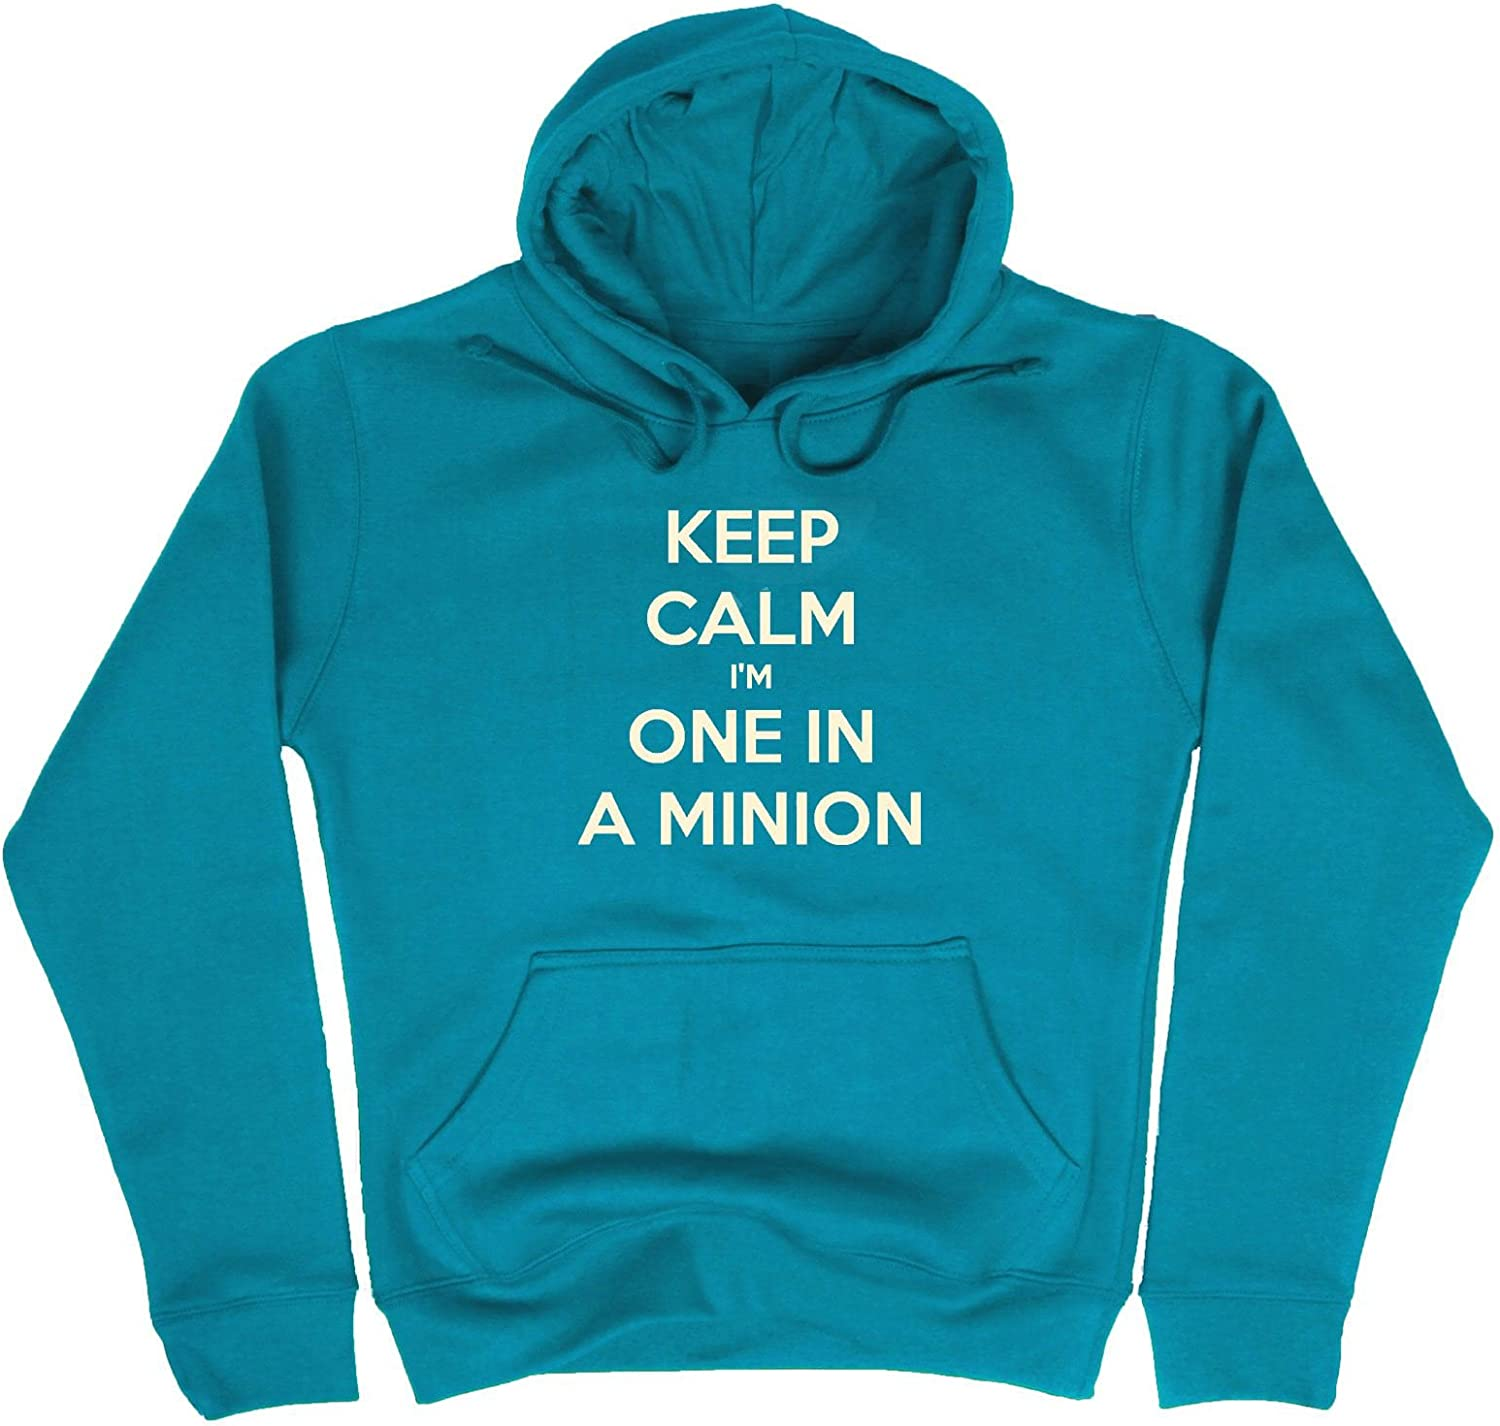 Boys Girls Minion Print Hoodie Keep Calm Im One in Minion Hoody Fleece Top Jumper Tracksuit Sweatshirt Hooded Jacket